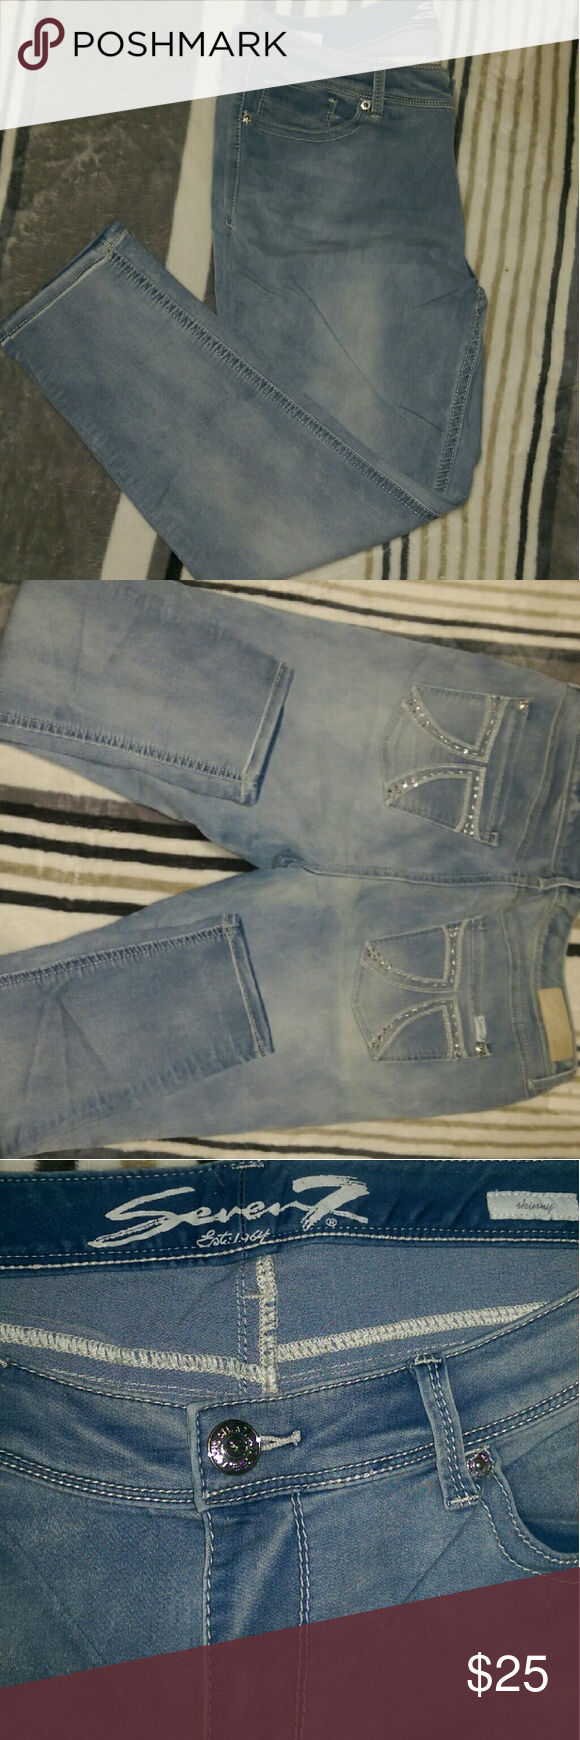 Seven 7 Luxe Skinny Jeans EUC Light weight denim Beautiful pocket detail Seven7 Jeans Skinny